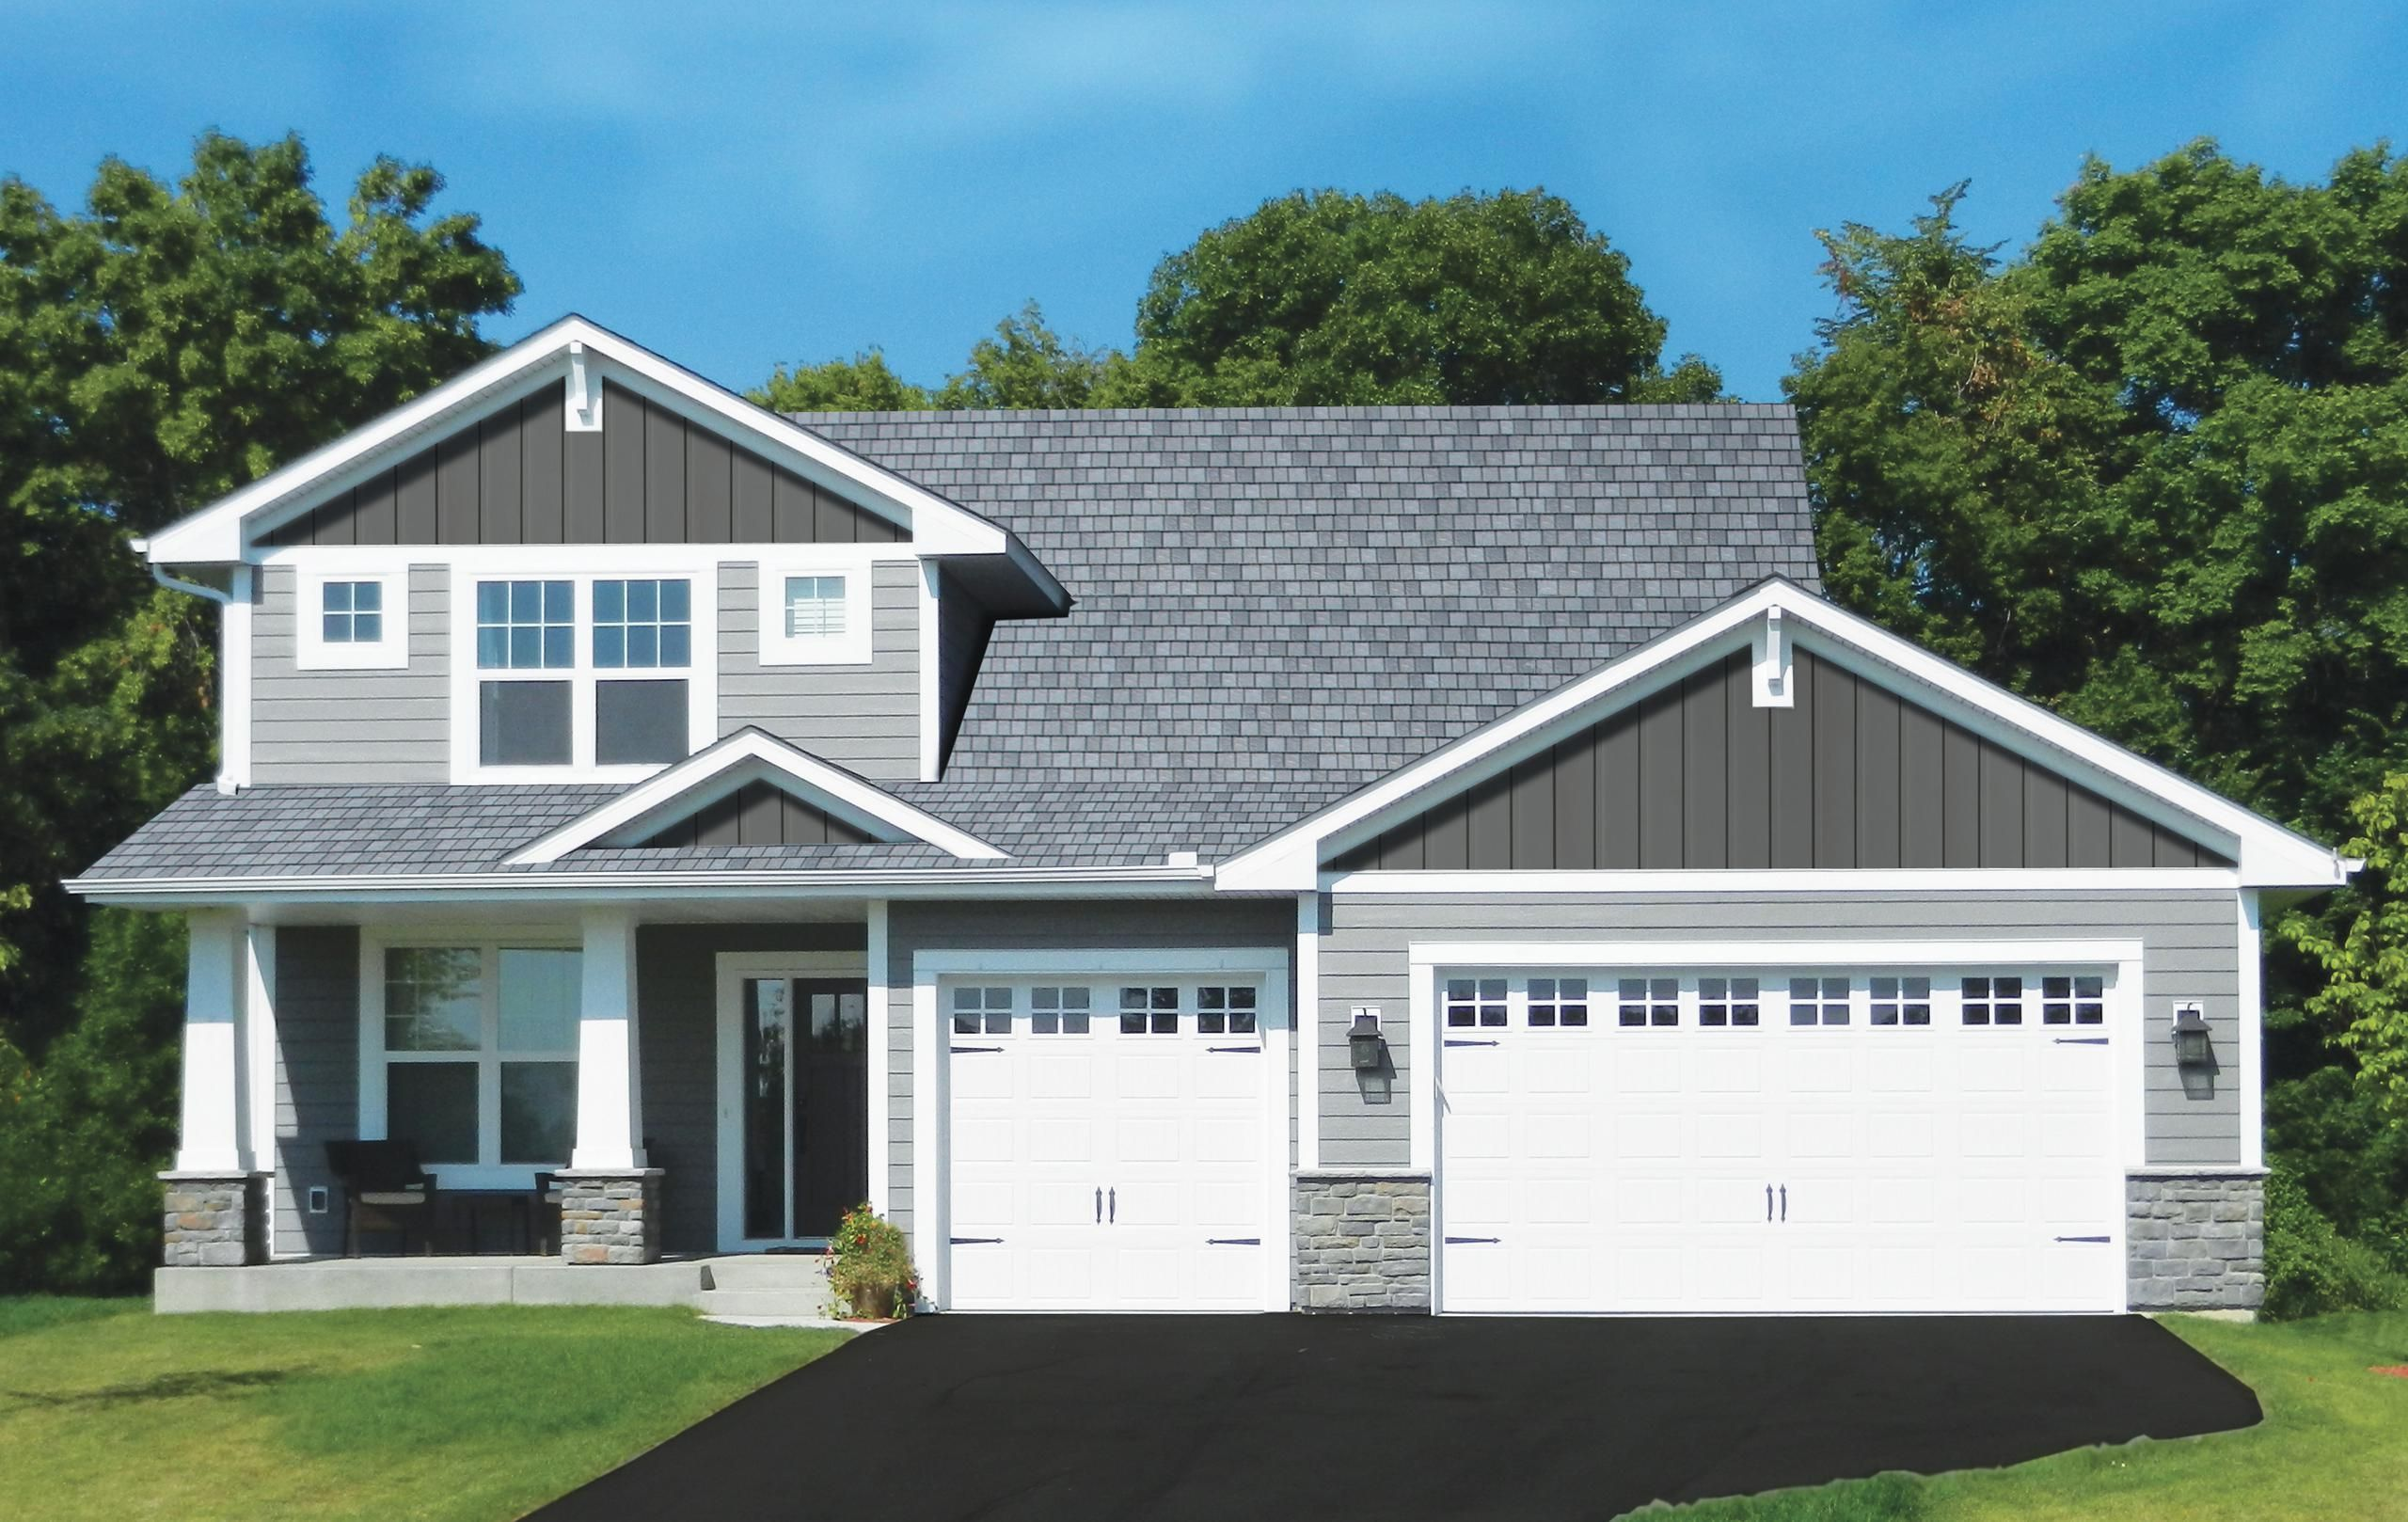 Roofing And Siding Styles